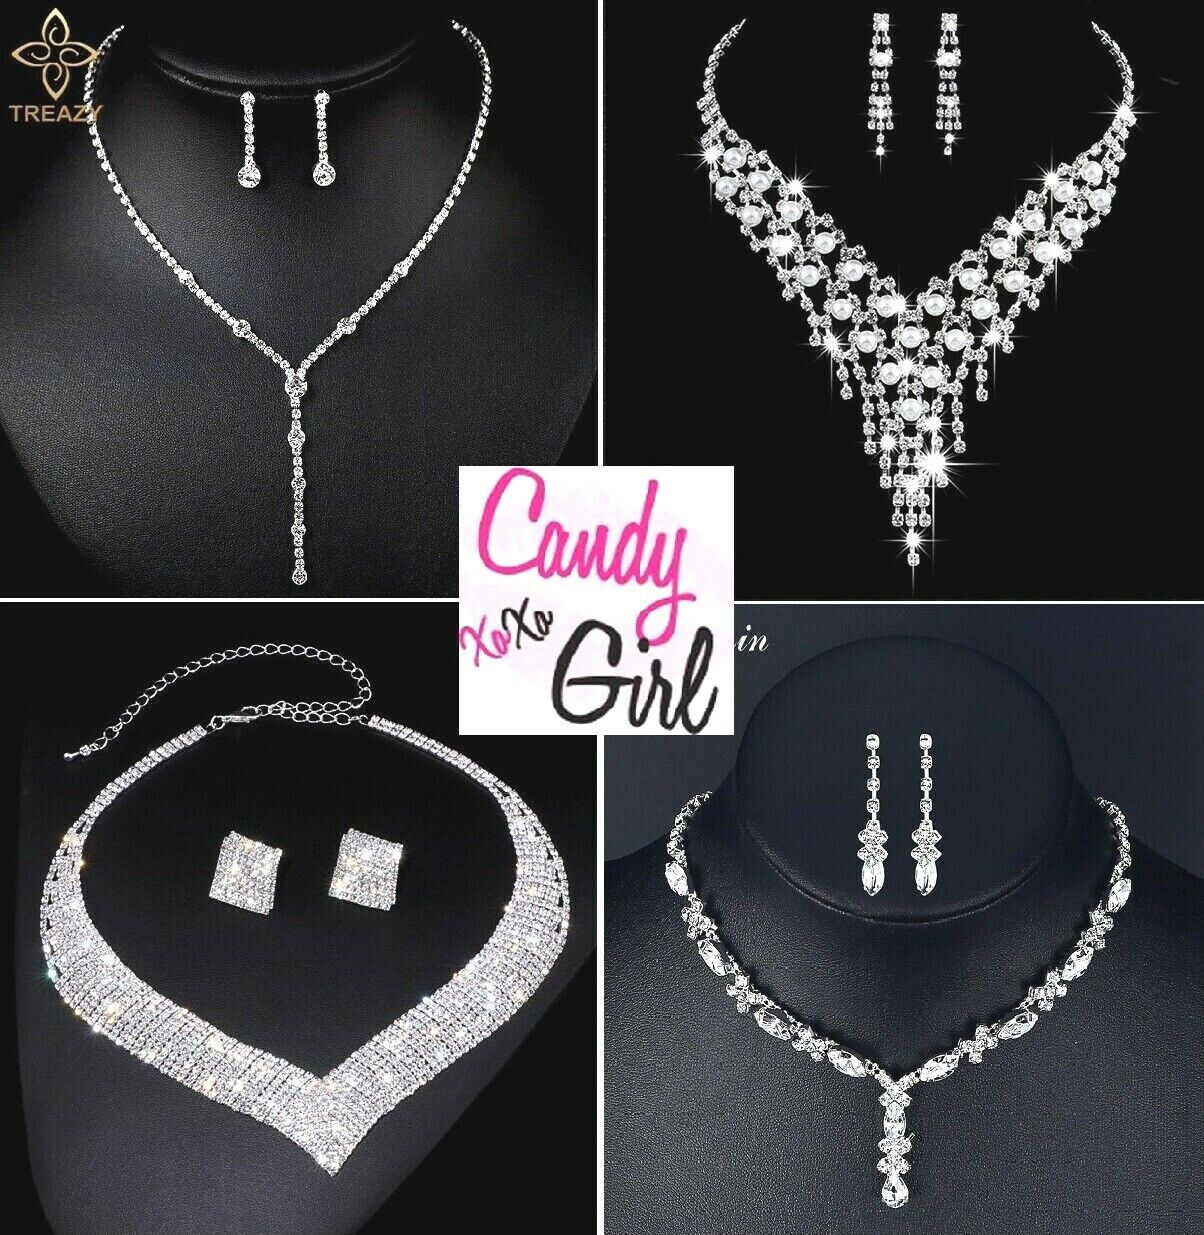 Jewellery - Stunning Crystal Diamante Evening Wedding Necklace And Earring Jewellery Sets